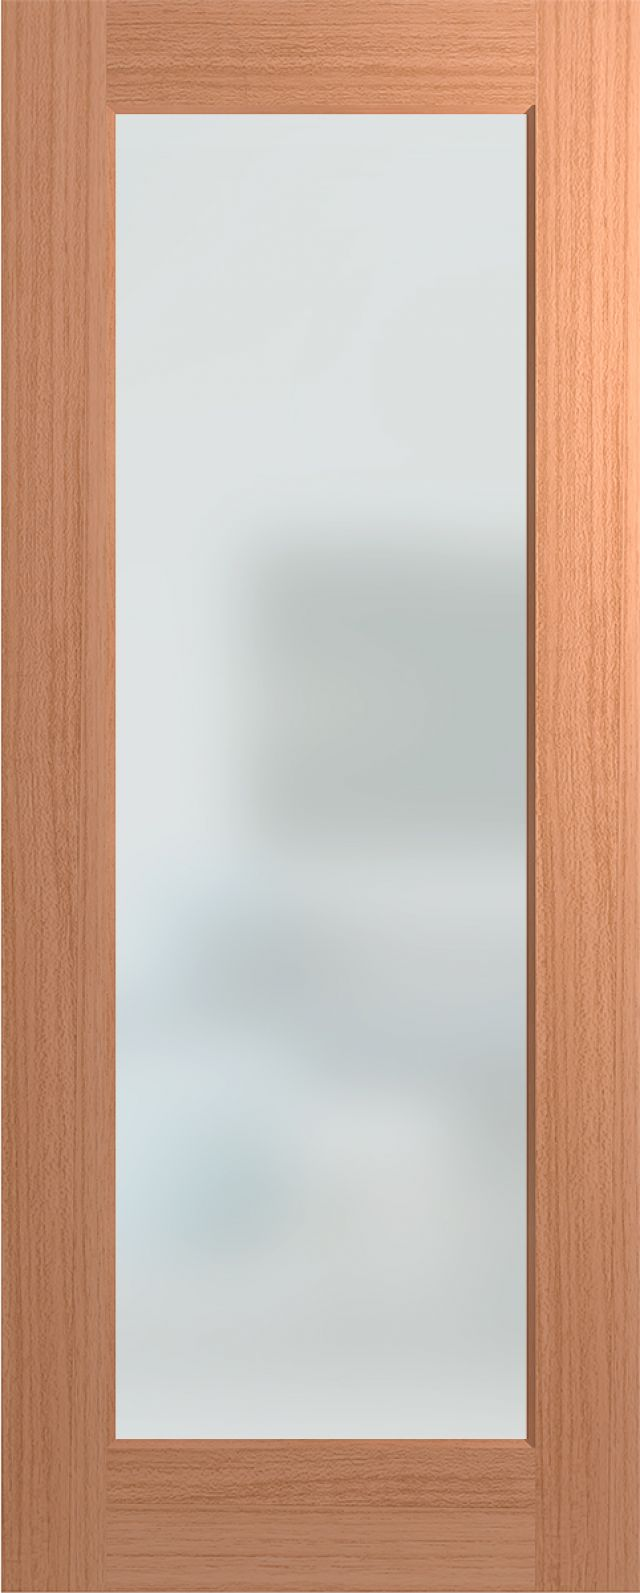 JST1 & JST1 | Joinery Entrance | Hume Doors